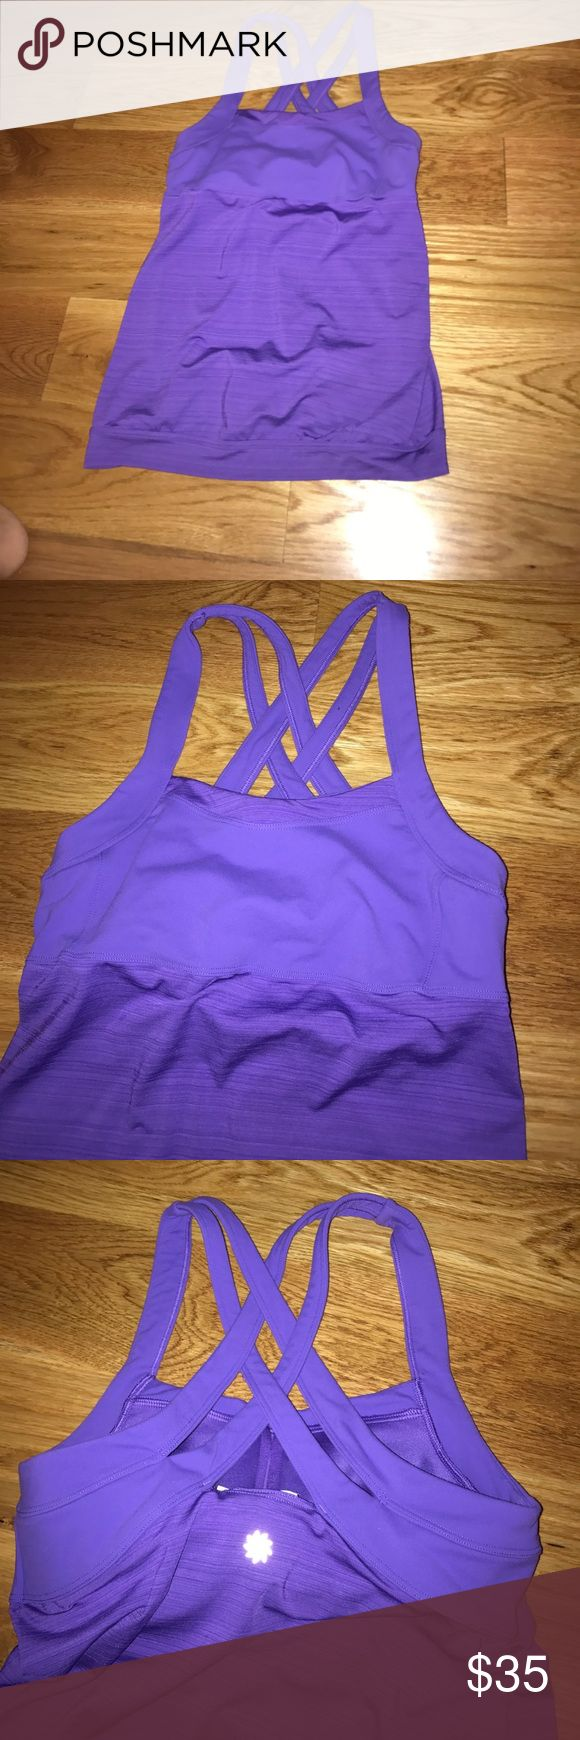 Athleta Crunch & Punch Tank Excellent very gently used condition Athleta Crunch and Punch Tank. Full support built in bra. Size Medium but can fit a Small with a bigger bust. Fitted top with blousy banded bottom. A great workout wardrobe staple. Purple Athleta Tops Tank Tops